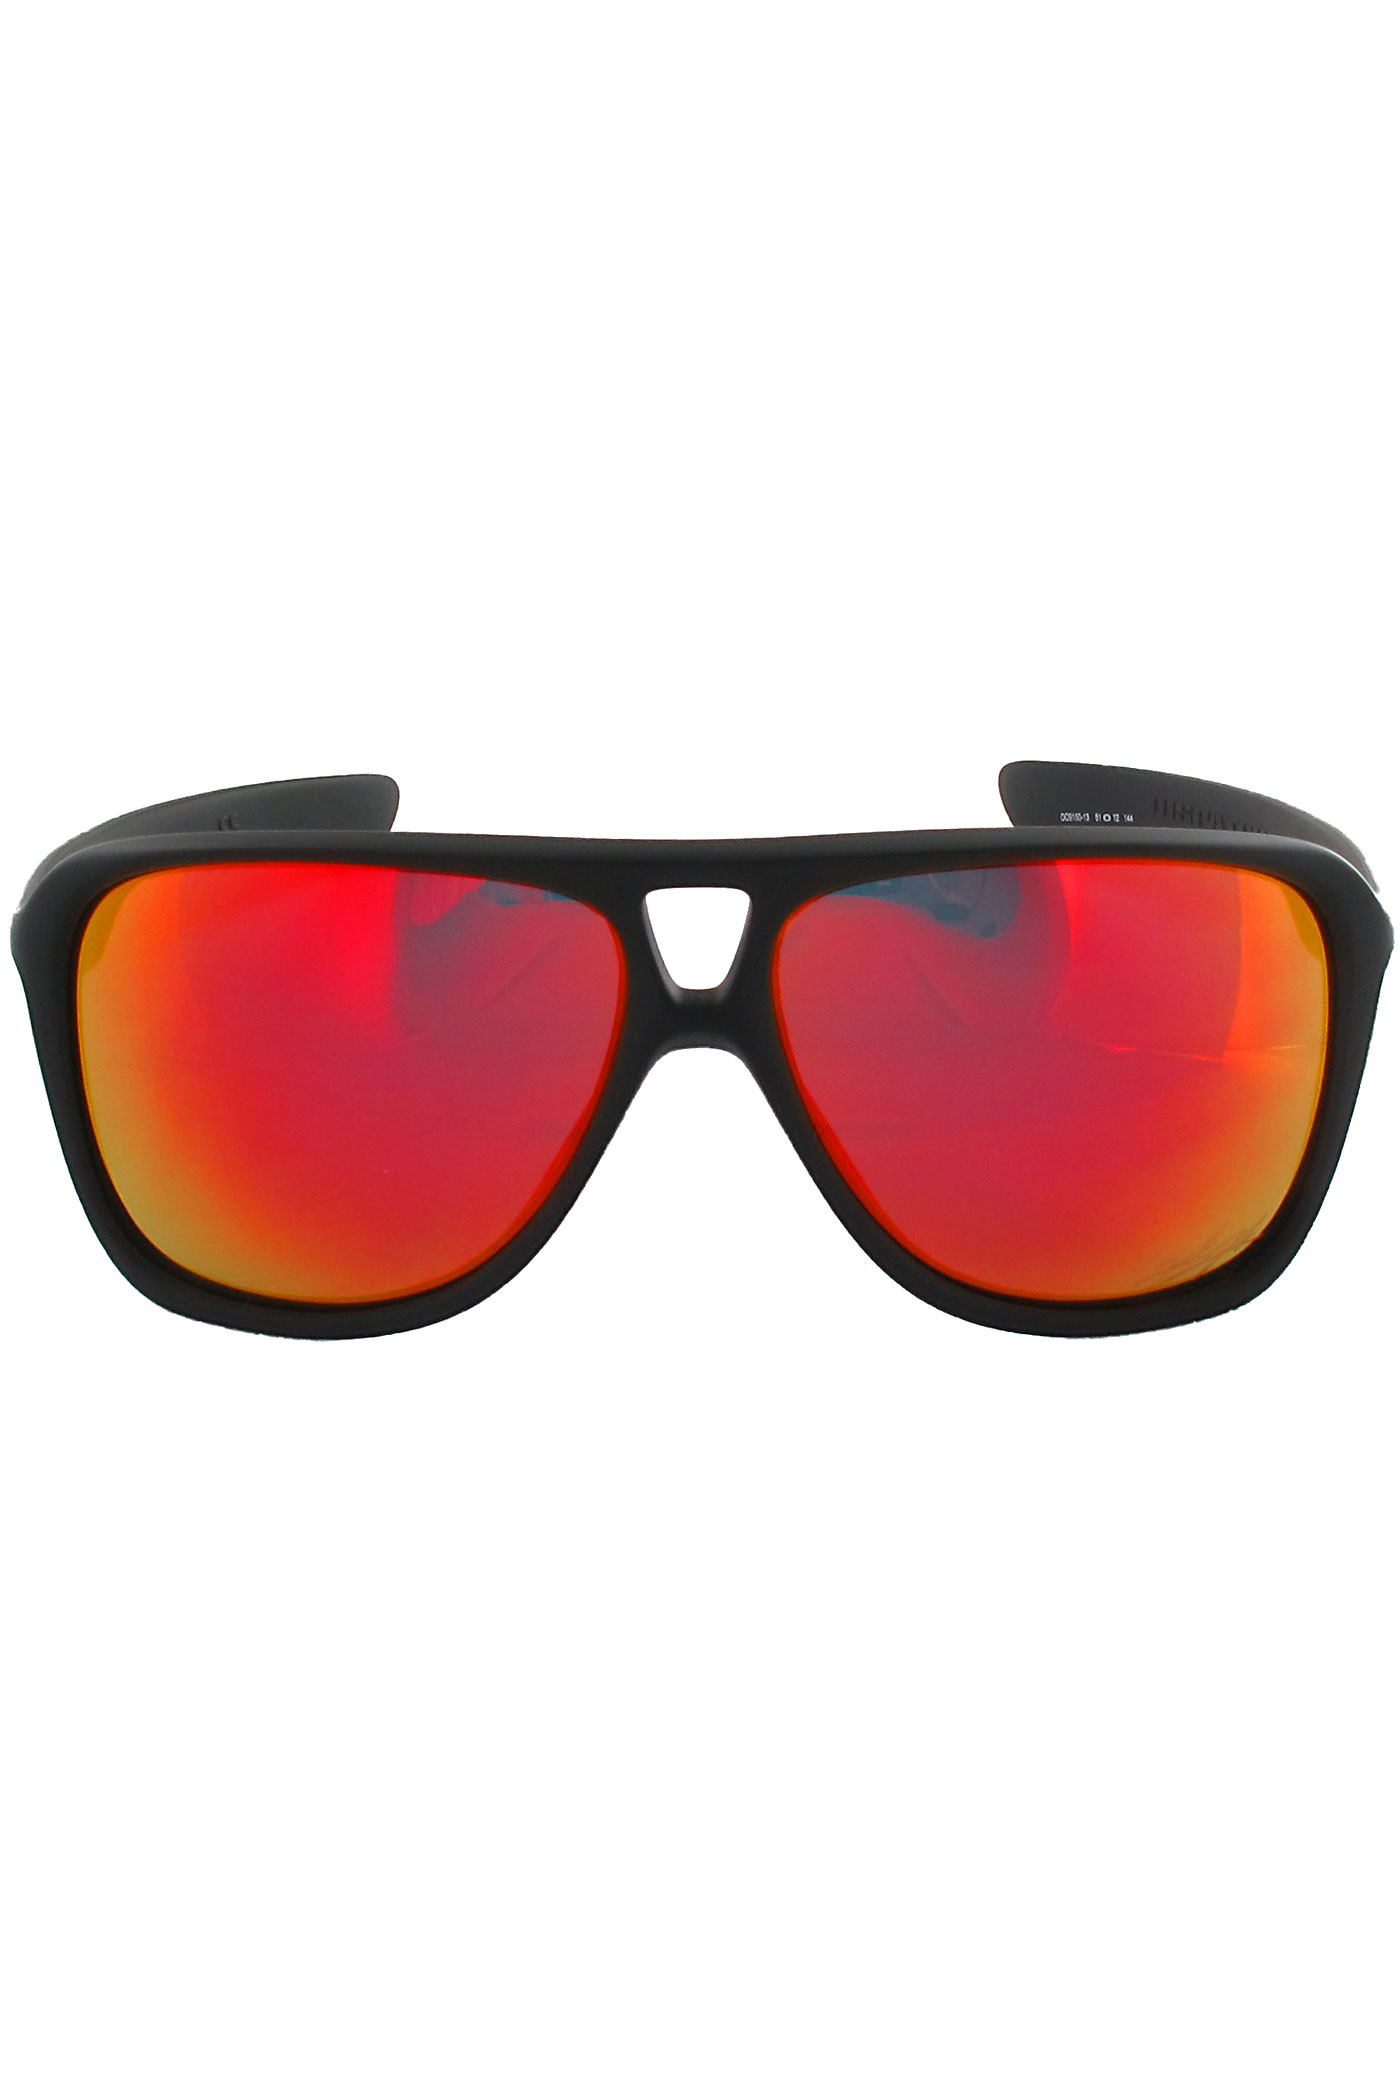 94f151db94 Oakley Dispatch Icons For Sale « Heritage Malta